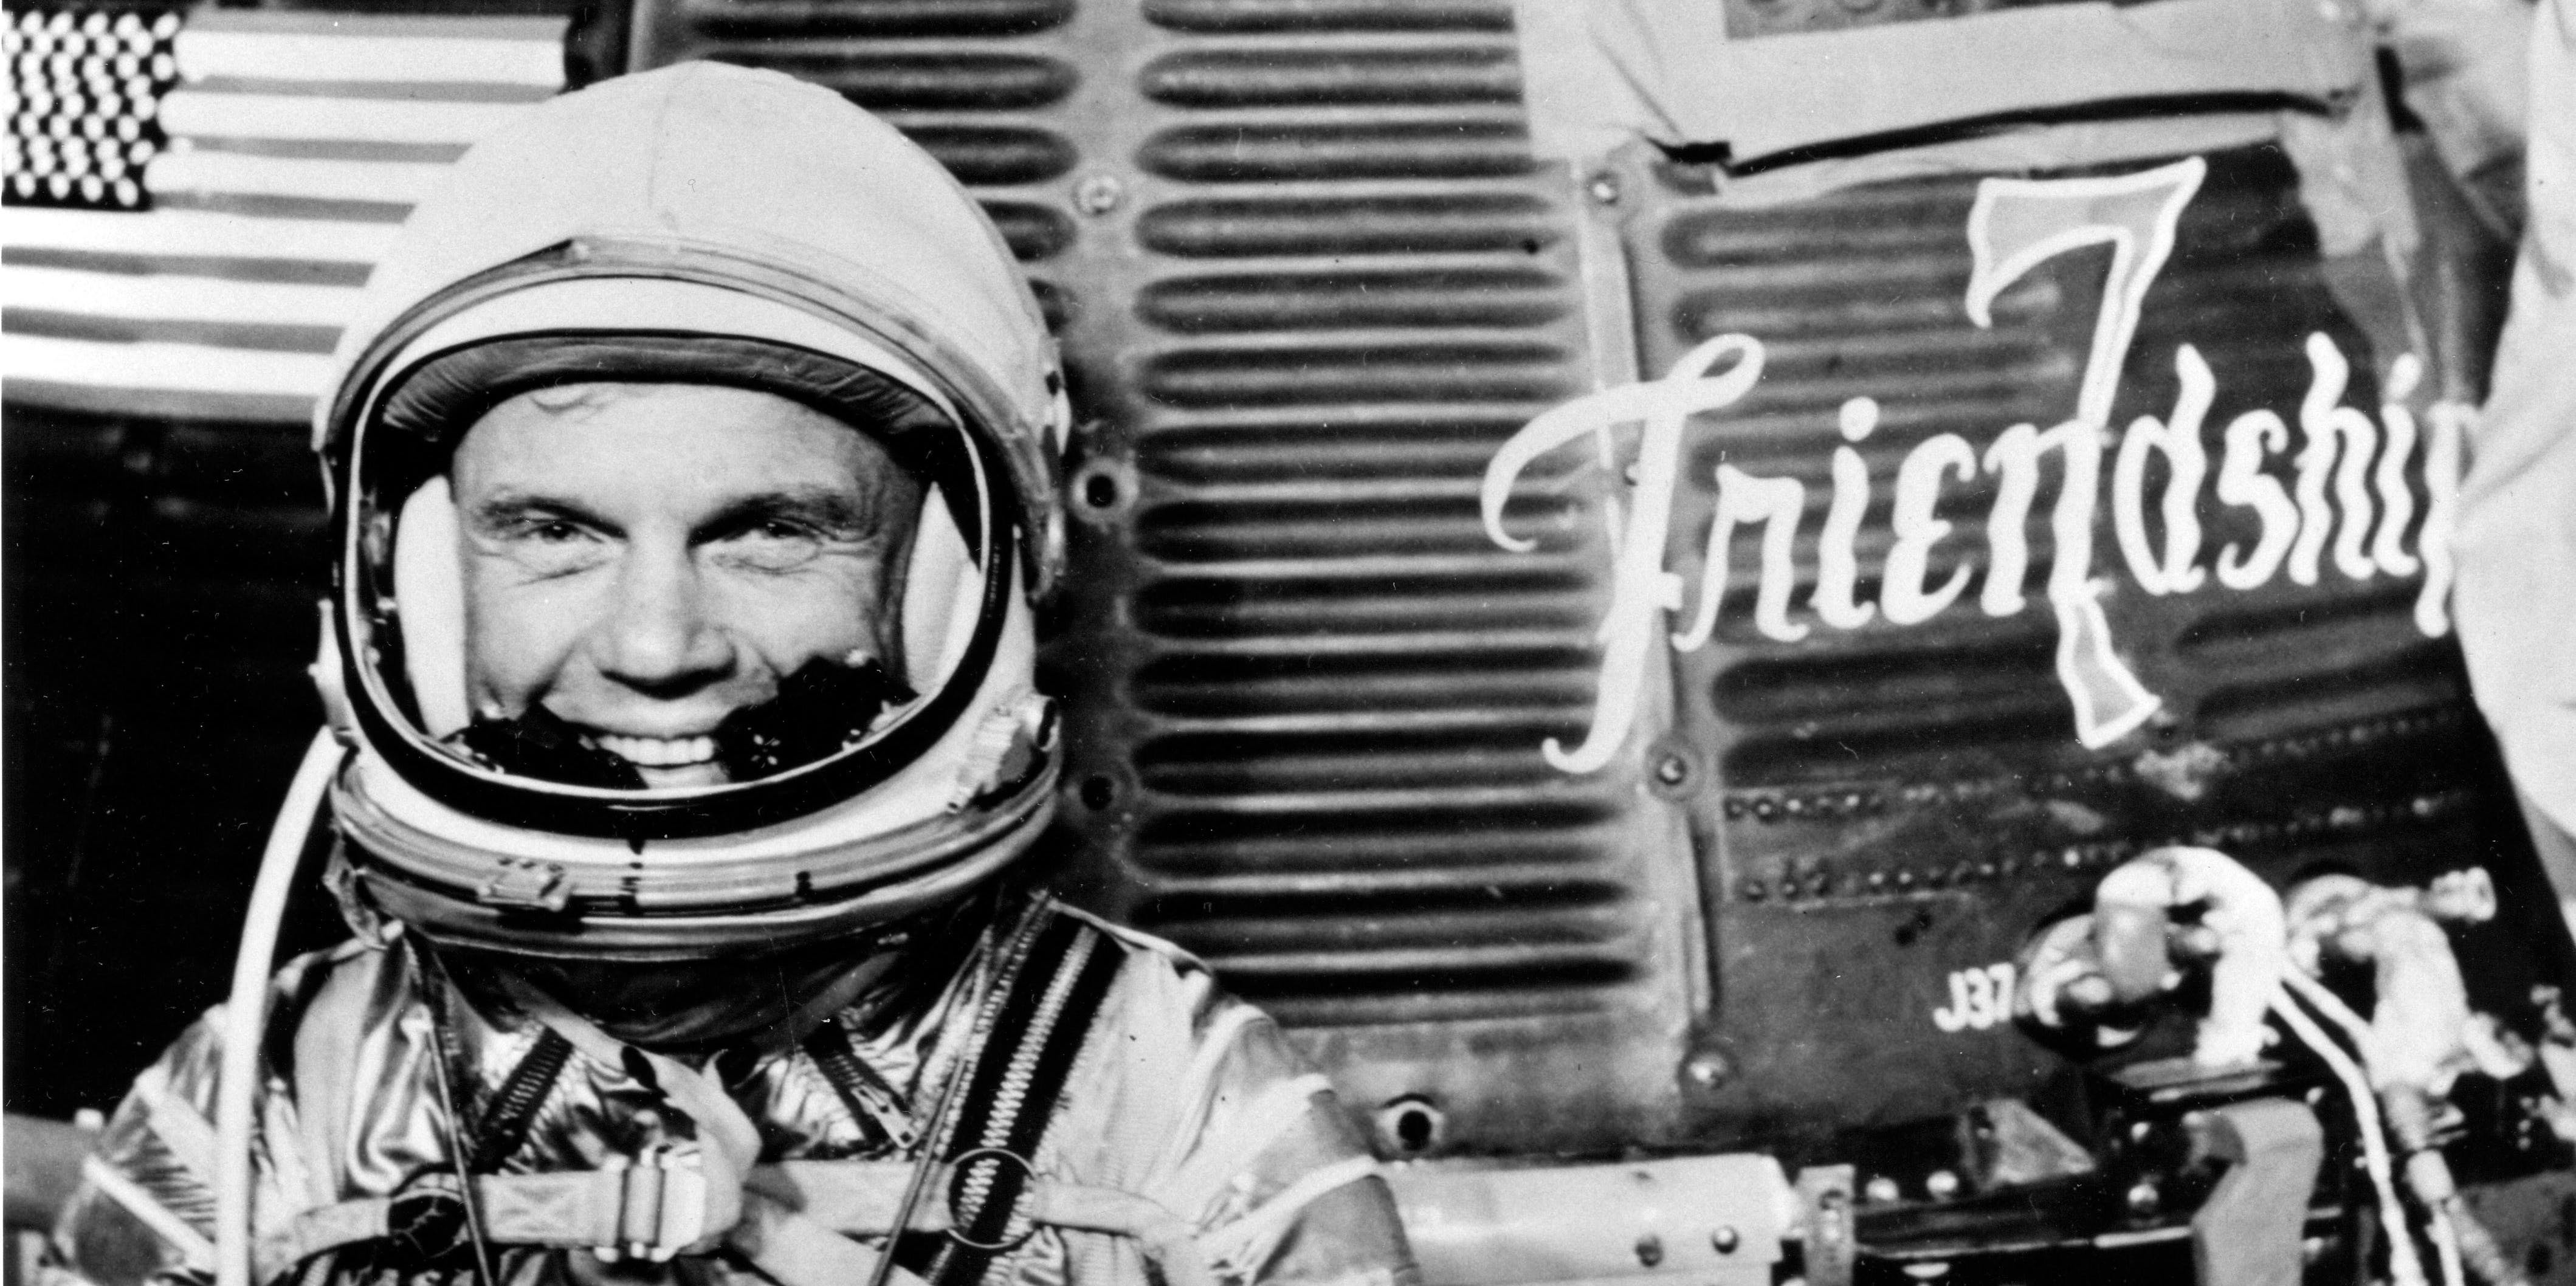 Rest in peace John Glenn, the world will miss you.